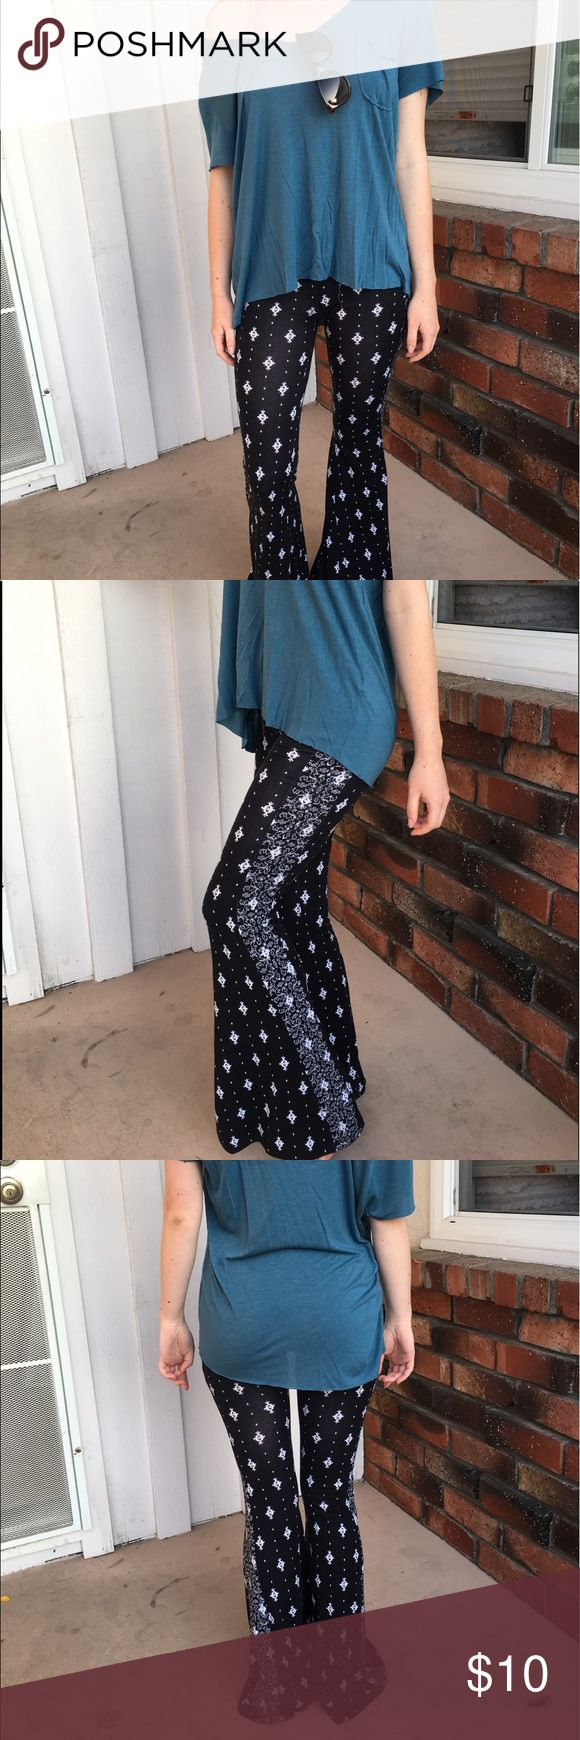 Bell Bottom Leggings These fun, 80' inspired leggings are extra comfy. Perfect for lounging around the house or next year @ Coachella! Partly see-through, so a long shirt is recommended LA Hearts Pants Boot Cut & Flare